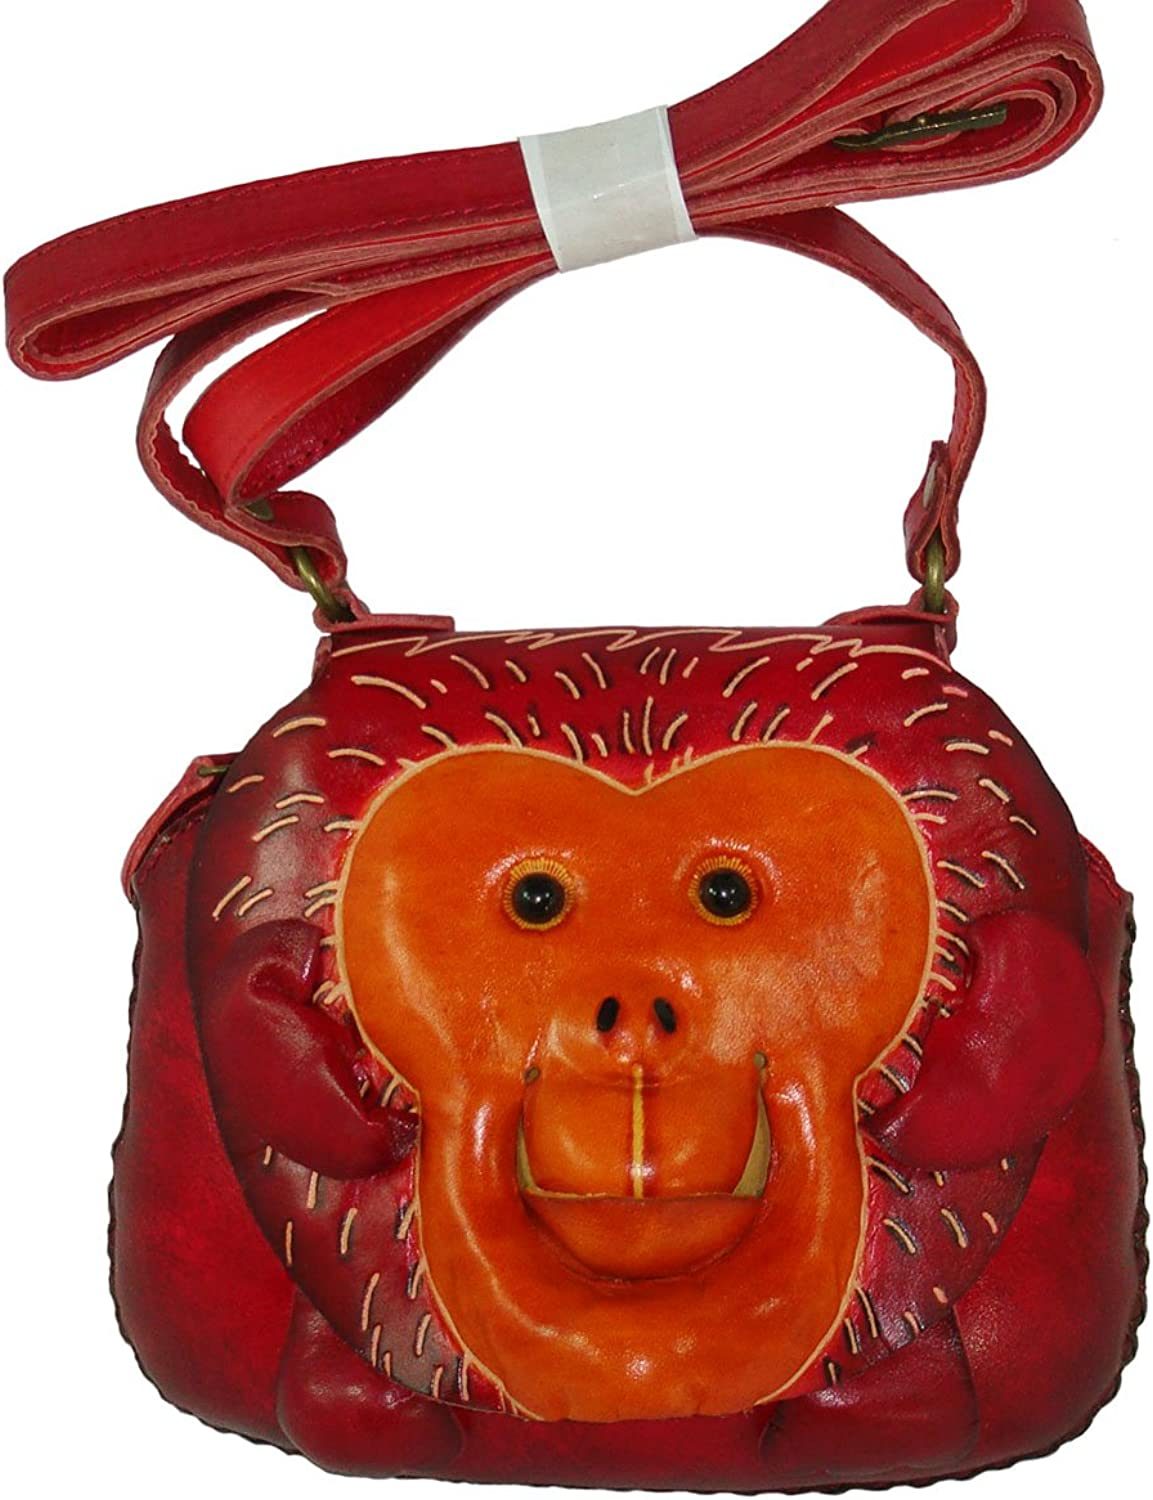 Genuine Leather Shoulder crossbody Bag, Red Monkey Pattern,a Unique Small Satchel.